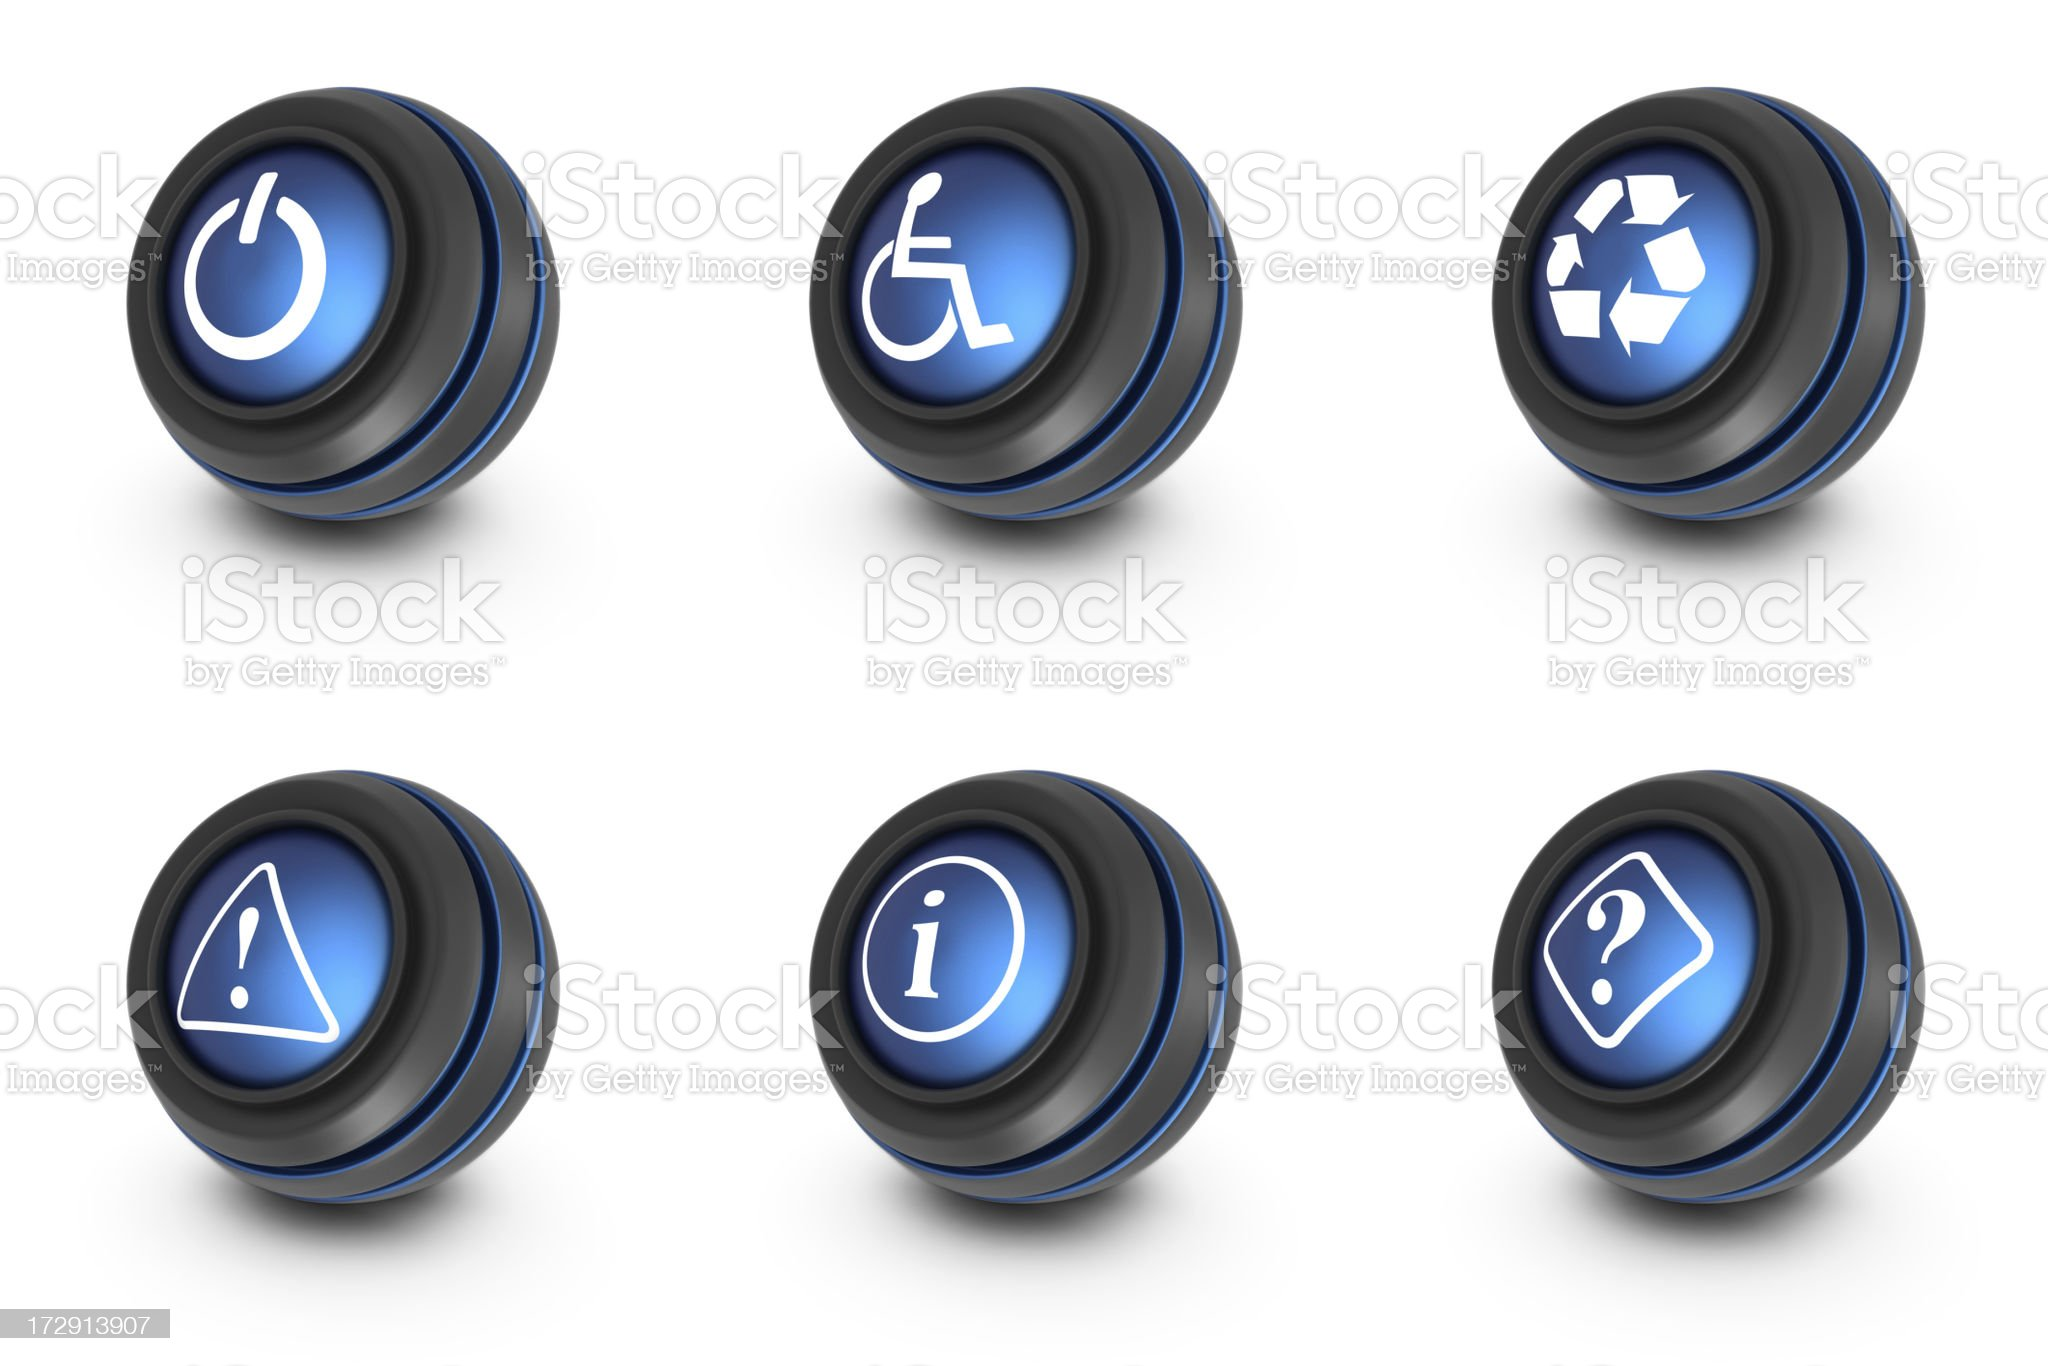 blue ball icons - signs royalty-free stock photo